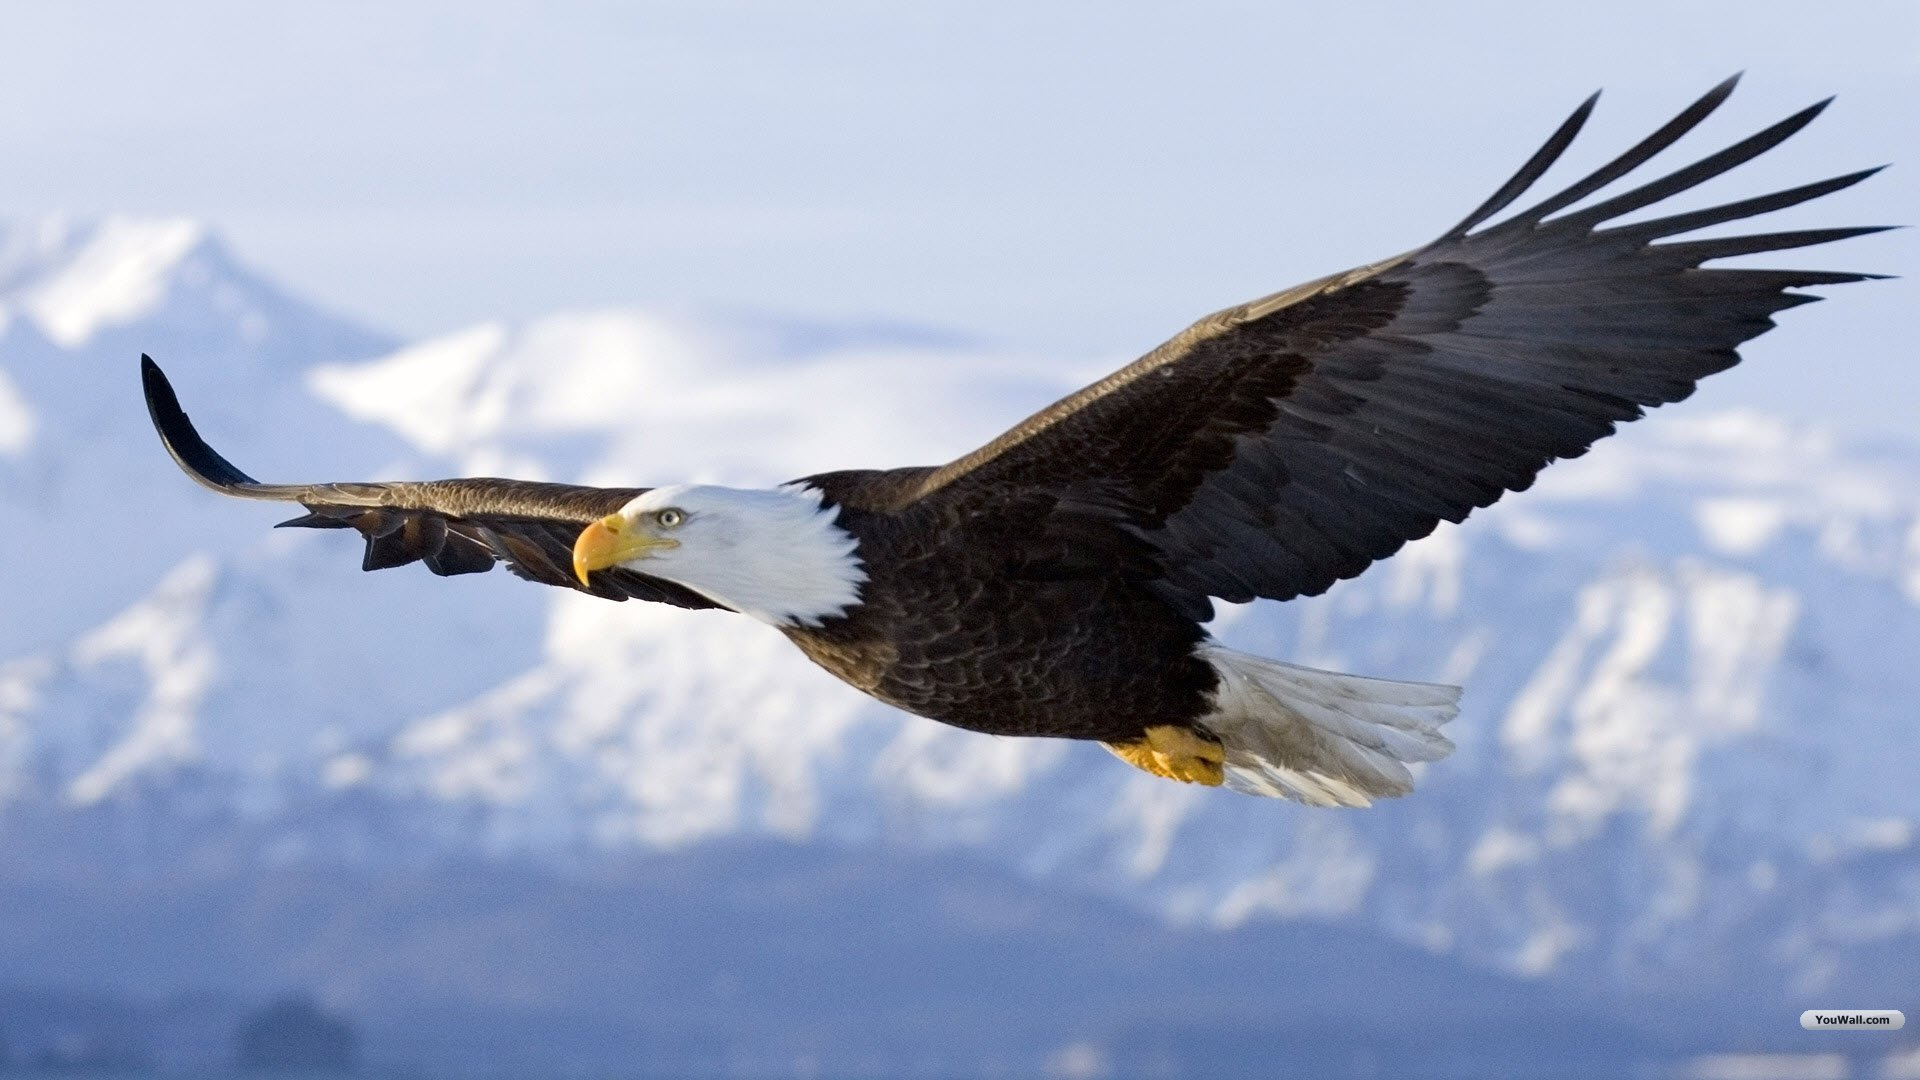 Youwall Flying Eagle Wallpaper 1920x1080PX ~ Eagles Wallpaper #99186